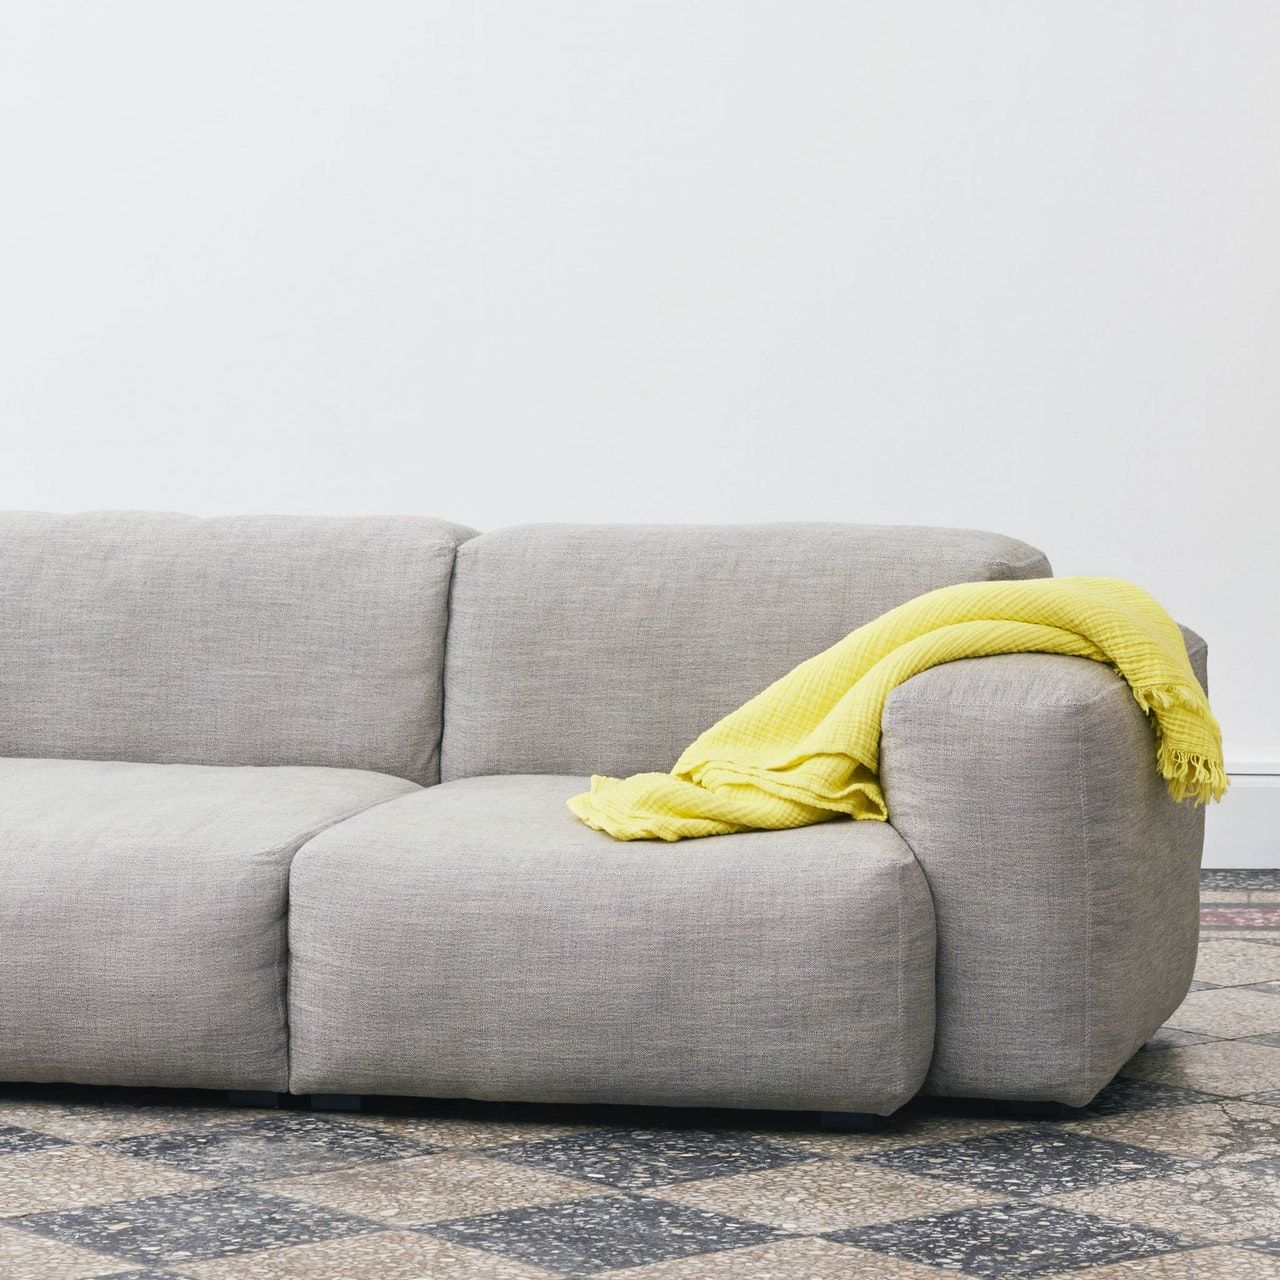 Mags Soft Low Arm Modular Sofa Units By Hay Modular Sofa Hay Modular Sofa Comfortable Sofa